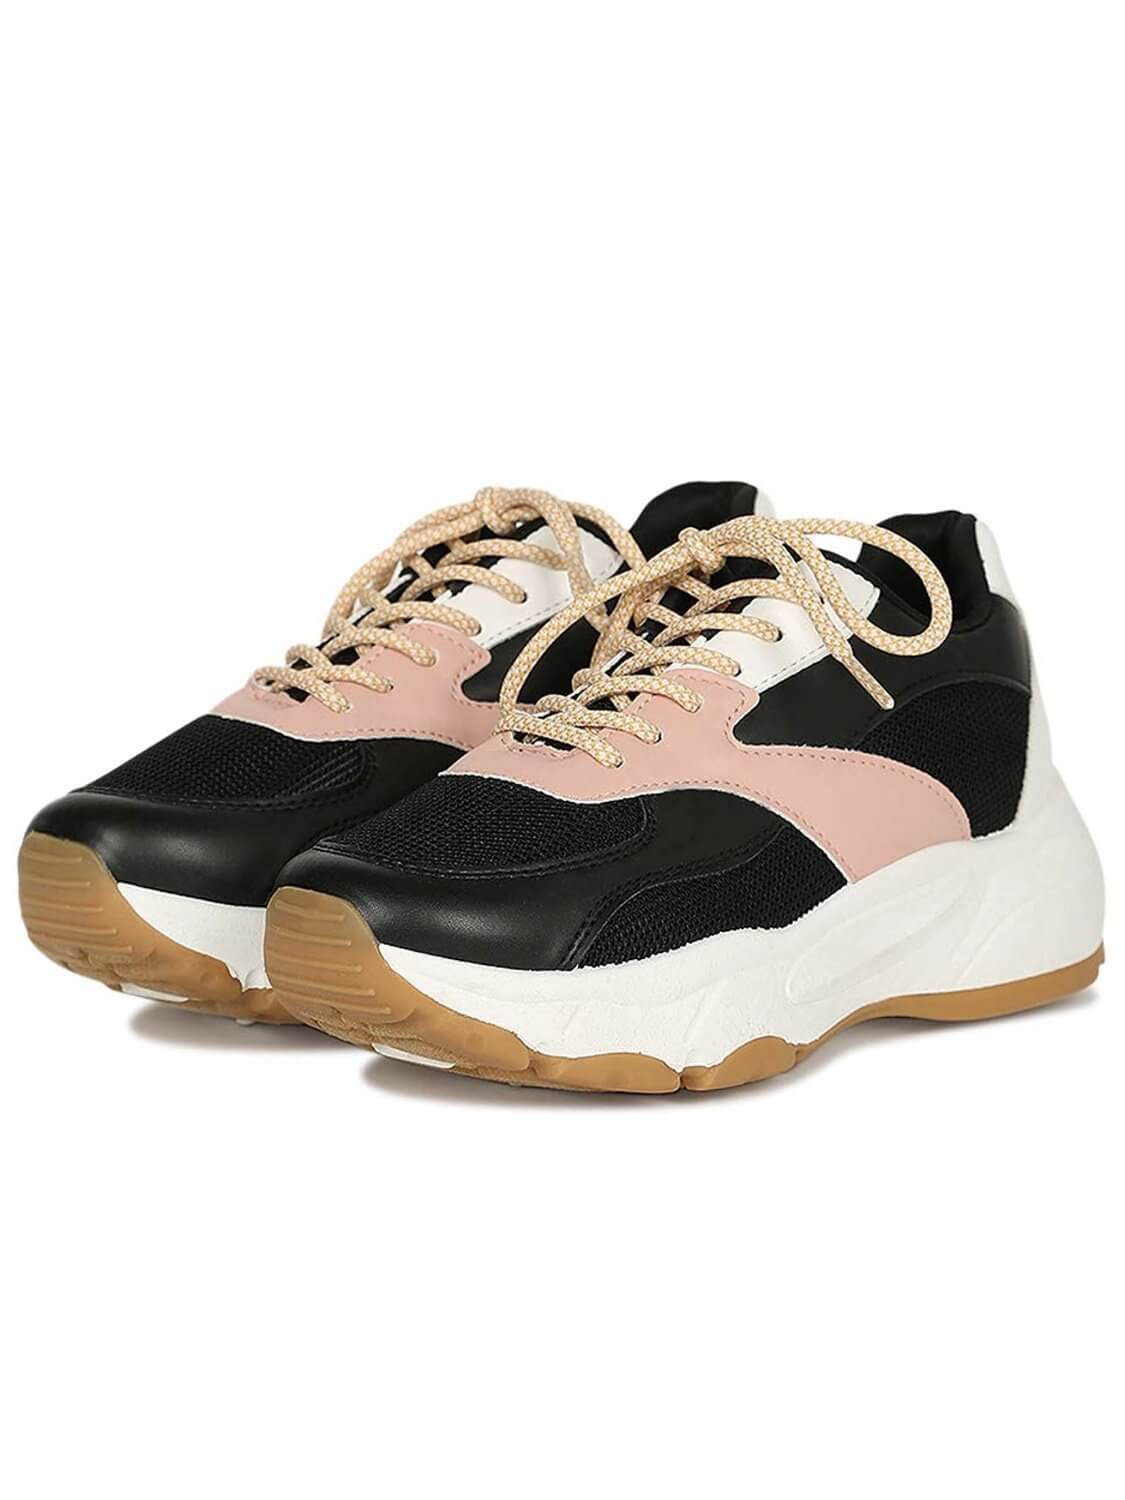 platform sneakers in black, pink and white, casual style, rubber sole, platform, laces and made of leatherette.